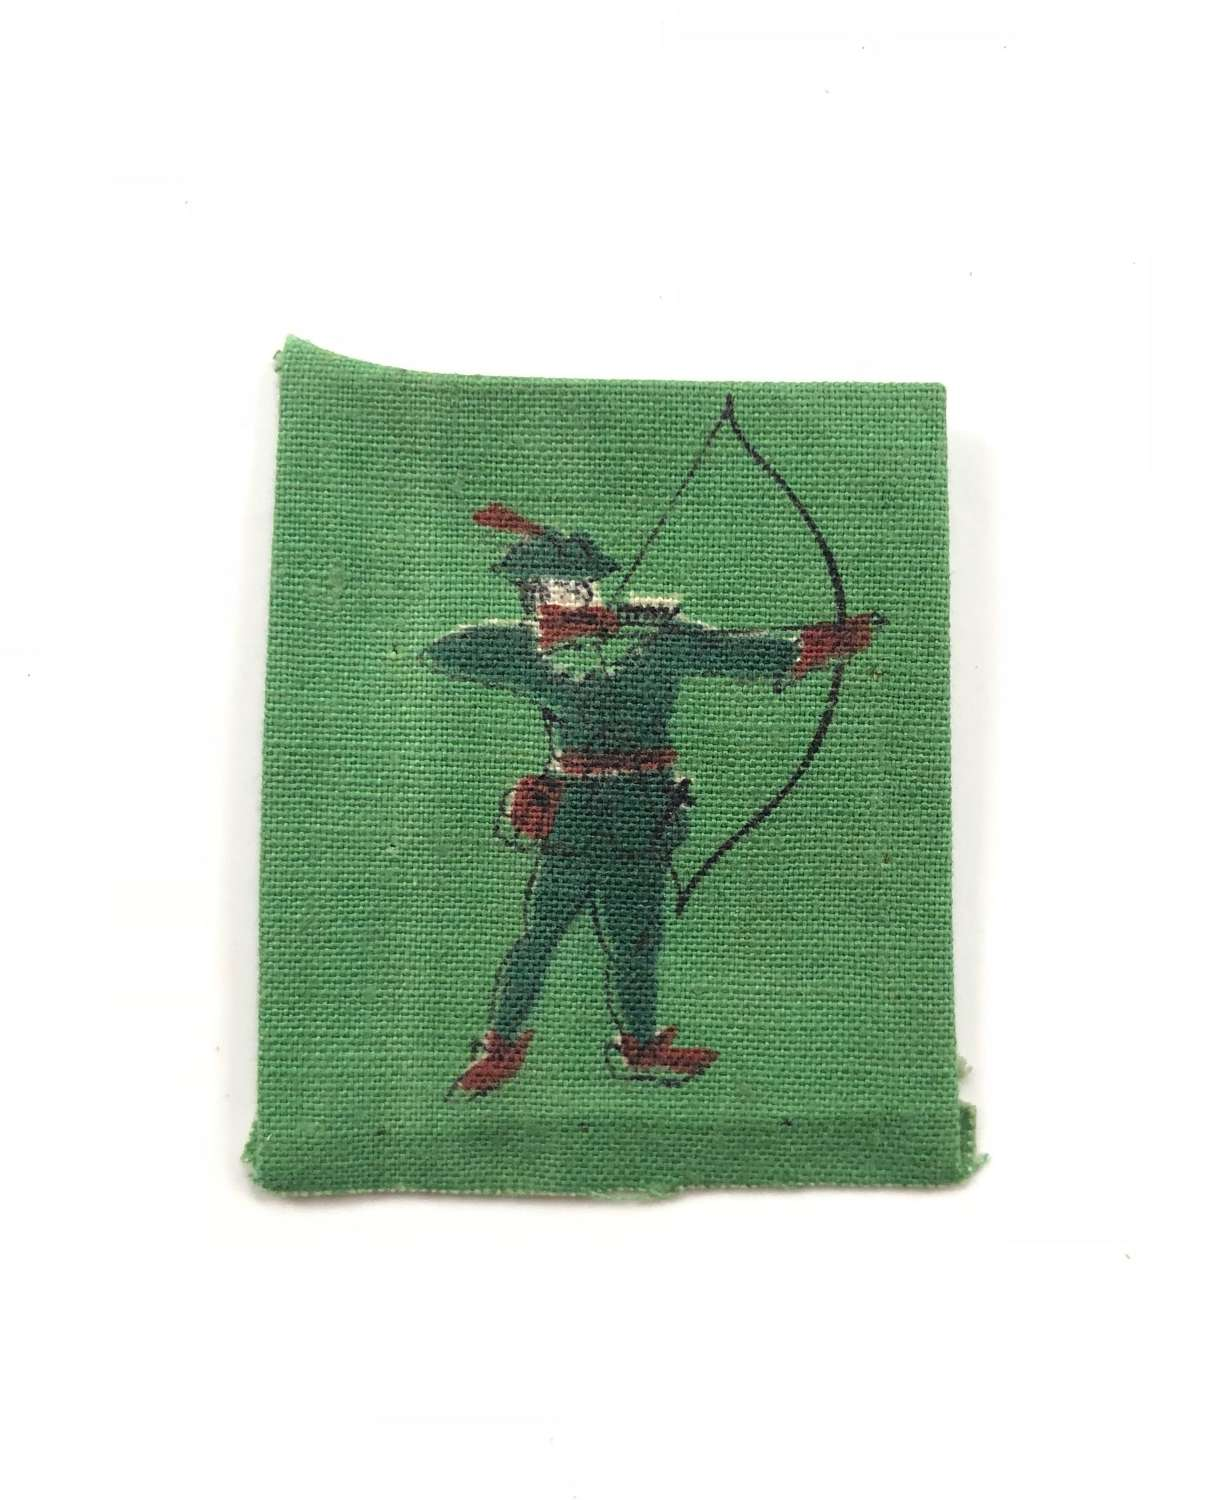 WW2 North Midland District Robin Hood Printed Formation Badge.